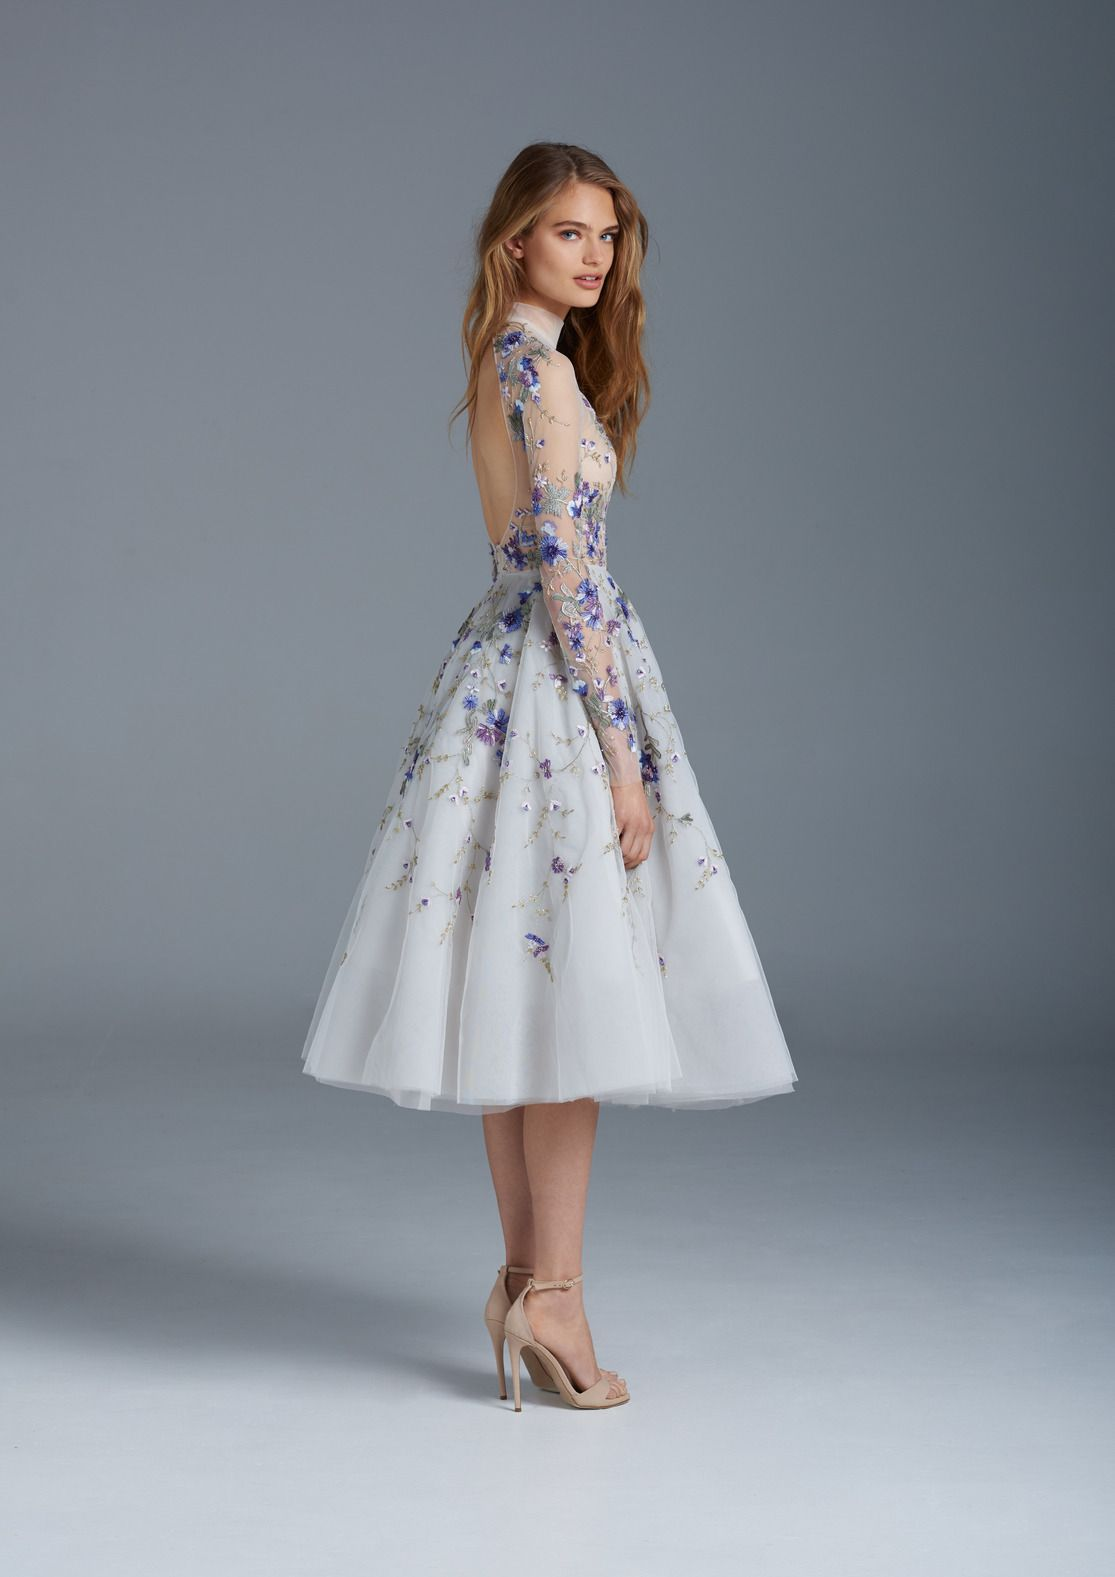 eclect-dissect: Paolo Sebastian Spring | Summer 201516 Couture ...